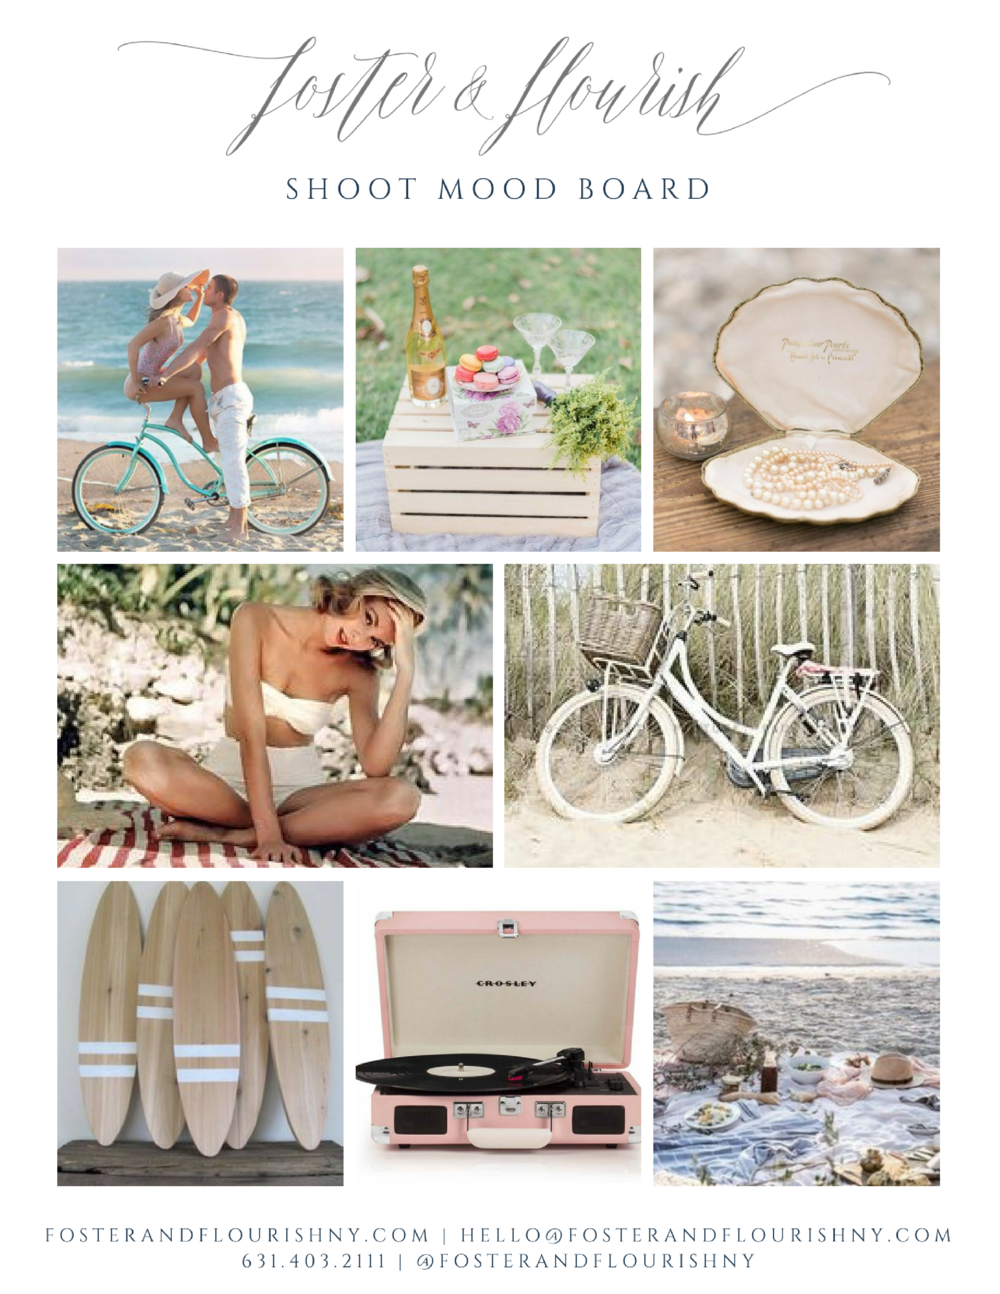 Shoot Mood board - our inspiration